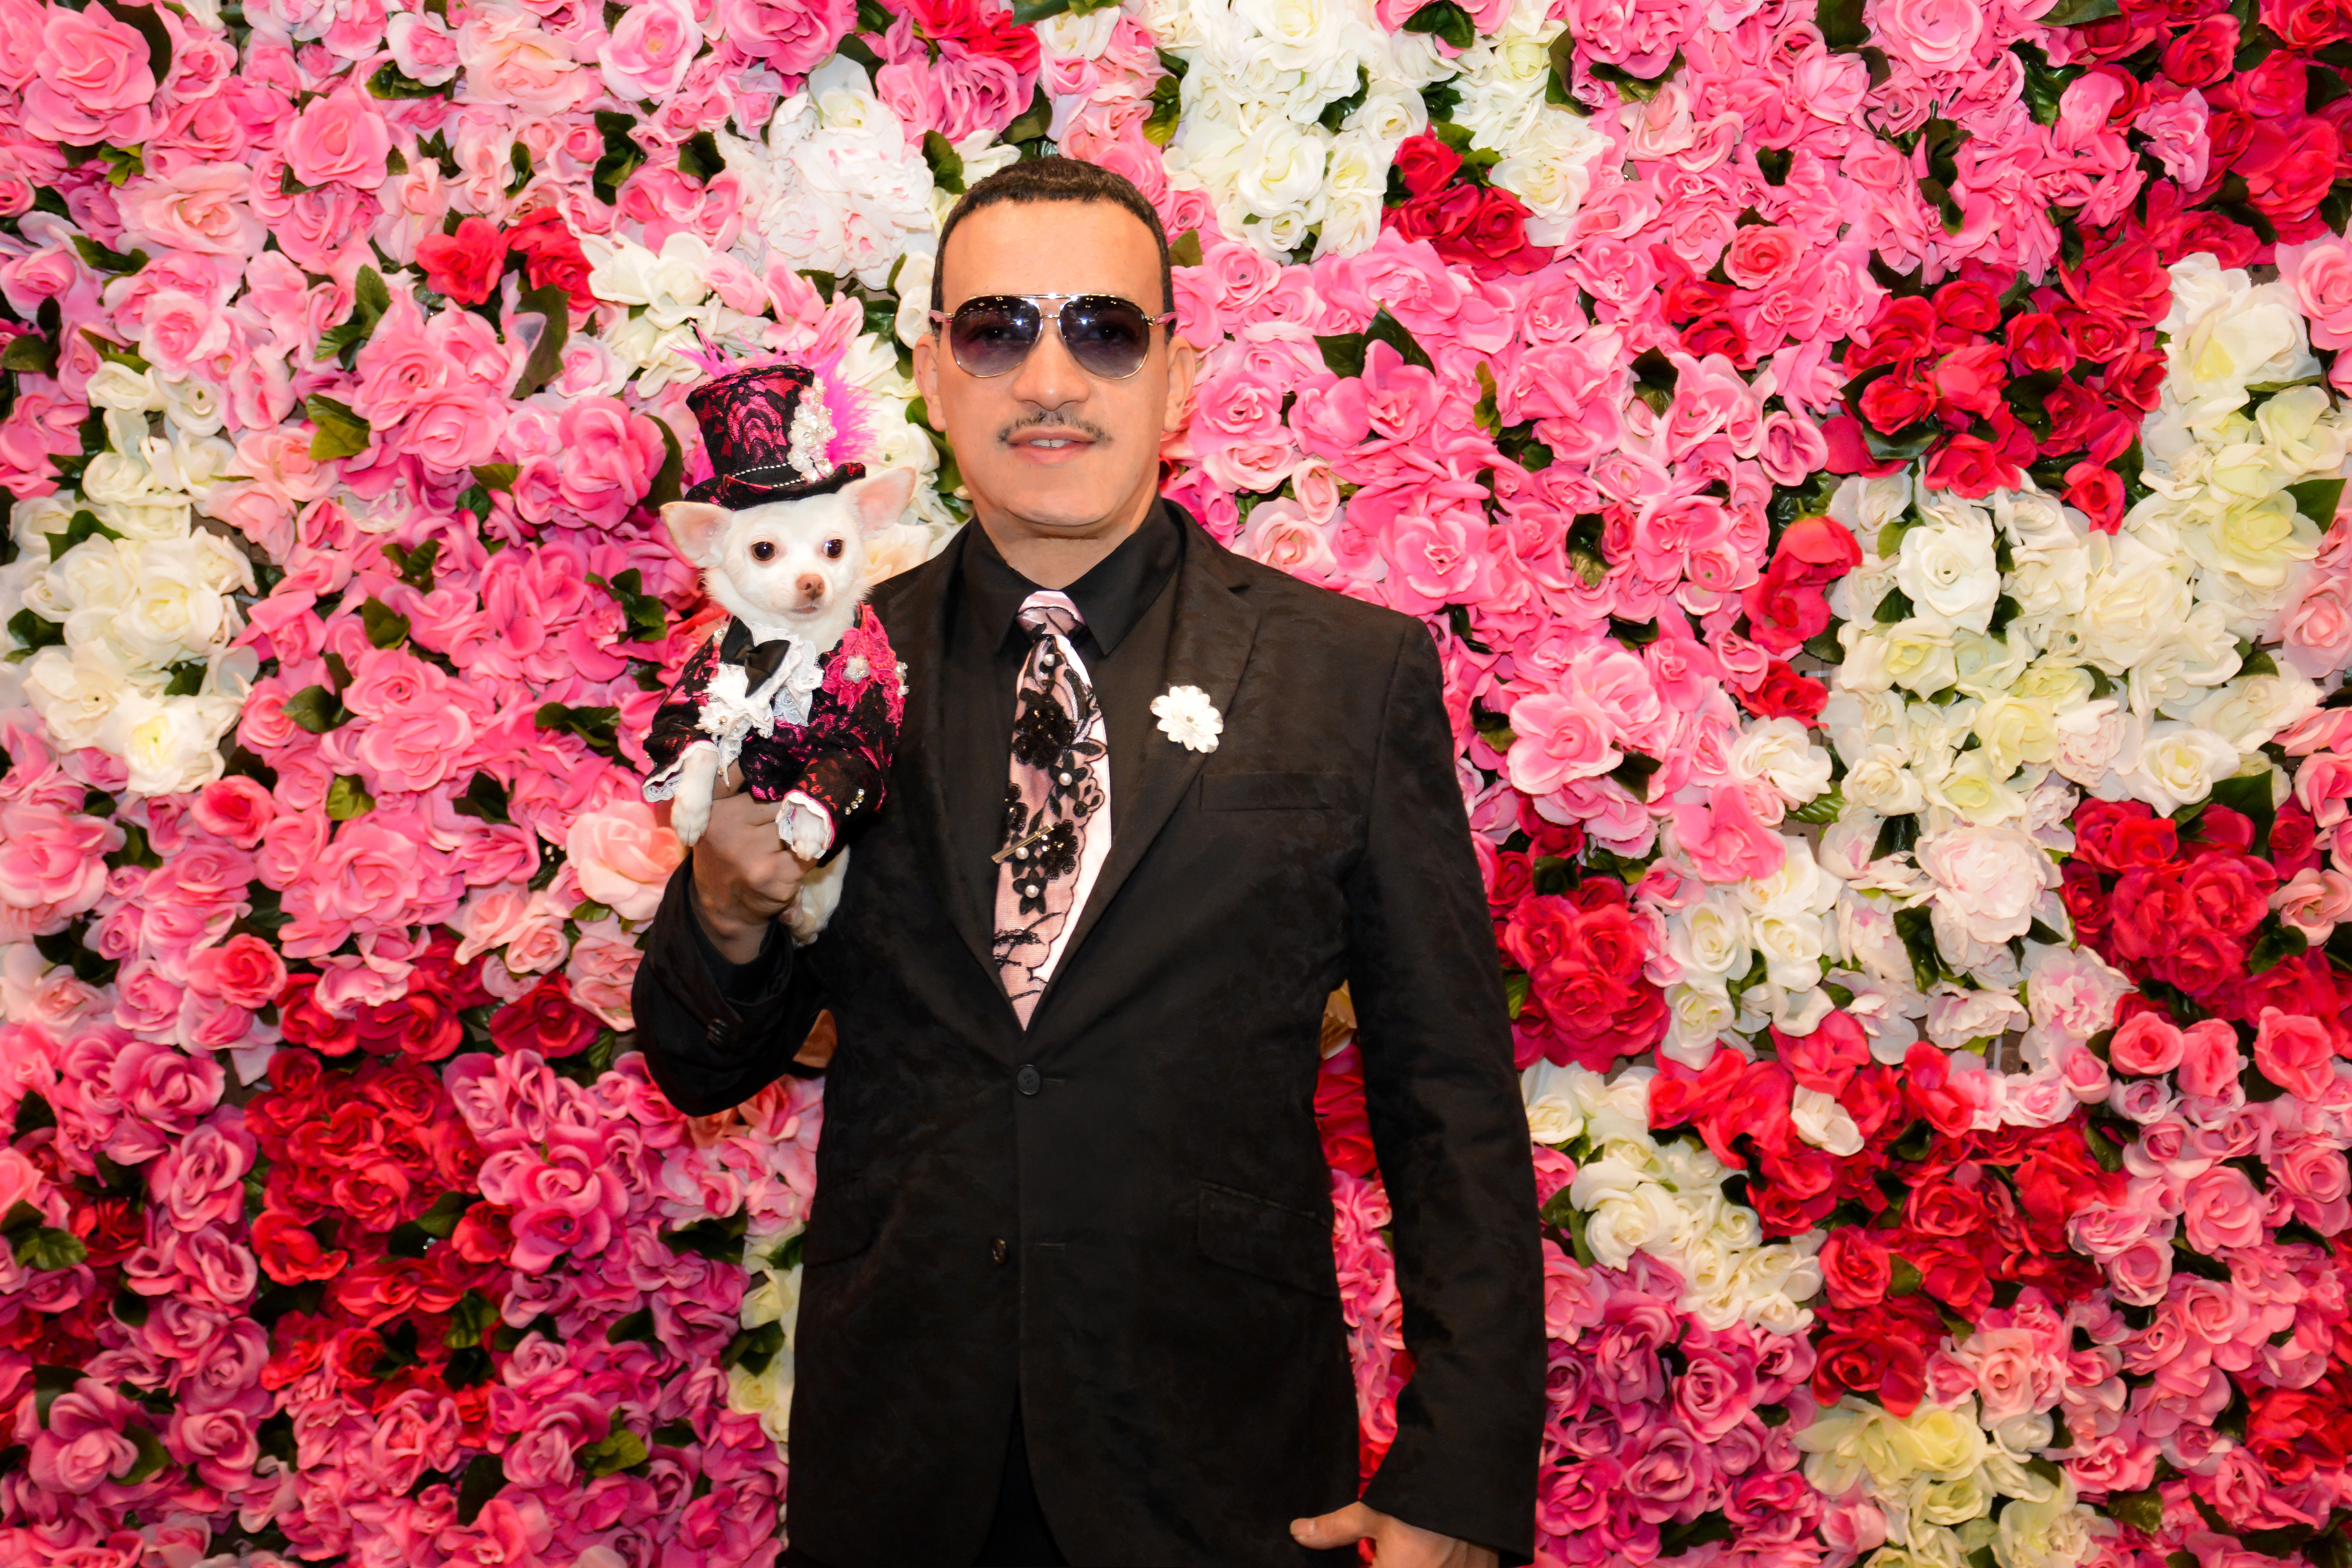 Spring Is In The Air! Pet Couturier Anthony Rubio with his Chihuahua Kimba wearing a pink with black lace overlay tuxedo and matching top hat created by Anthony Rubio.